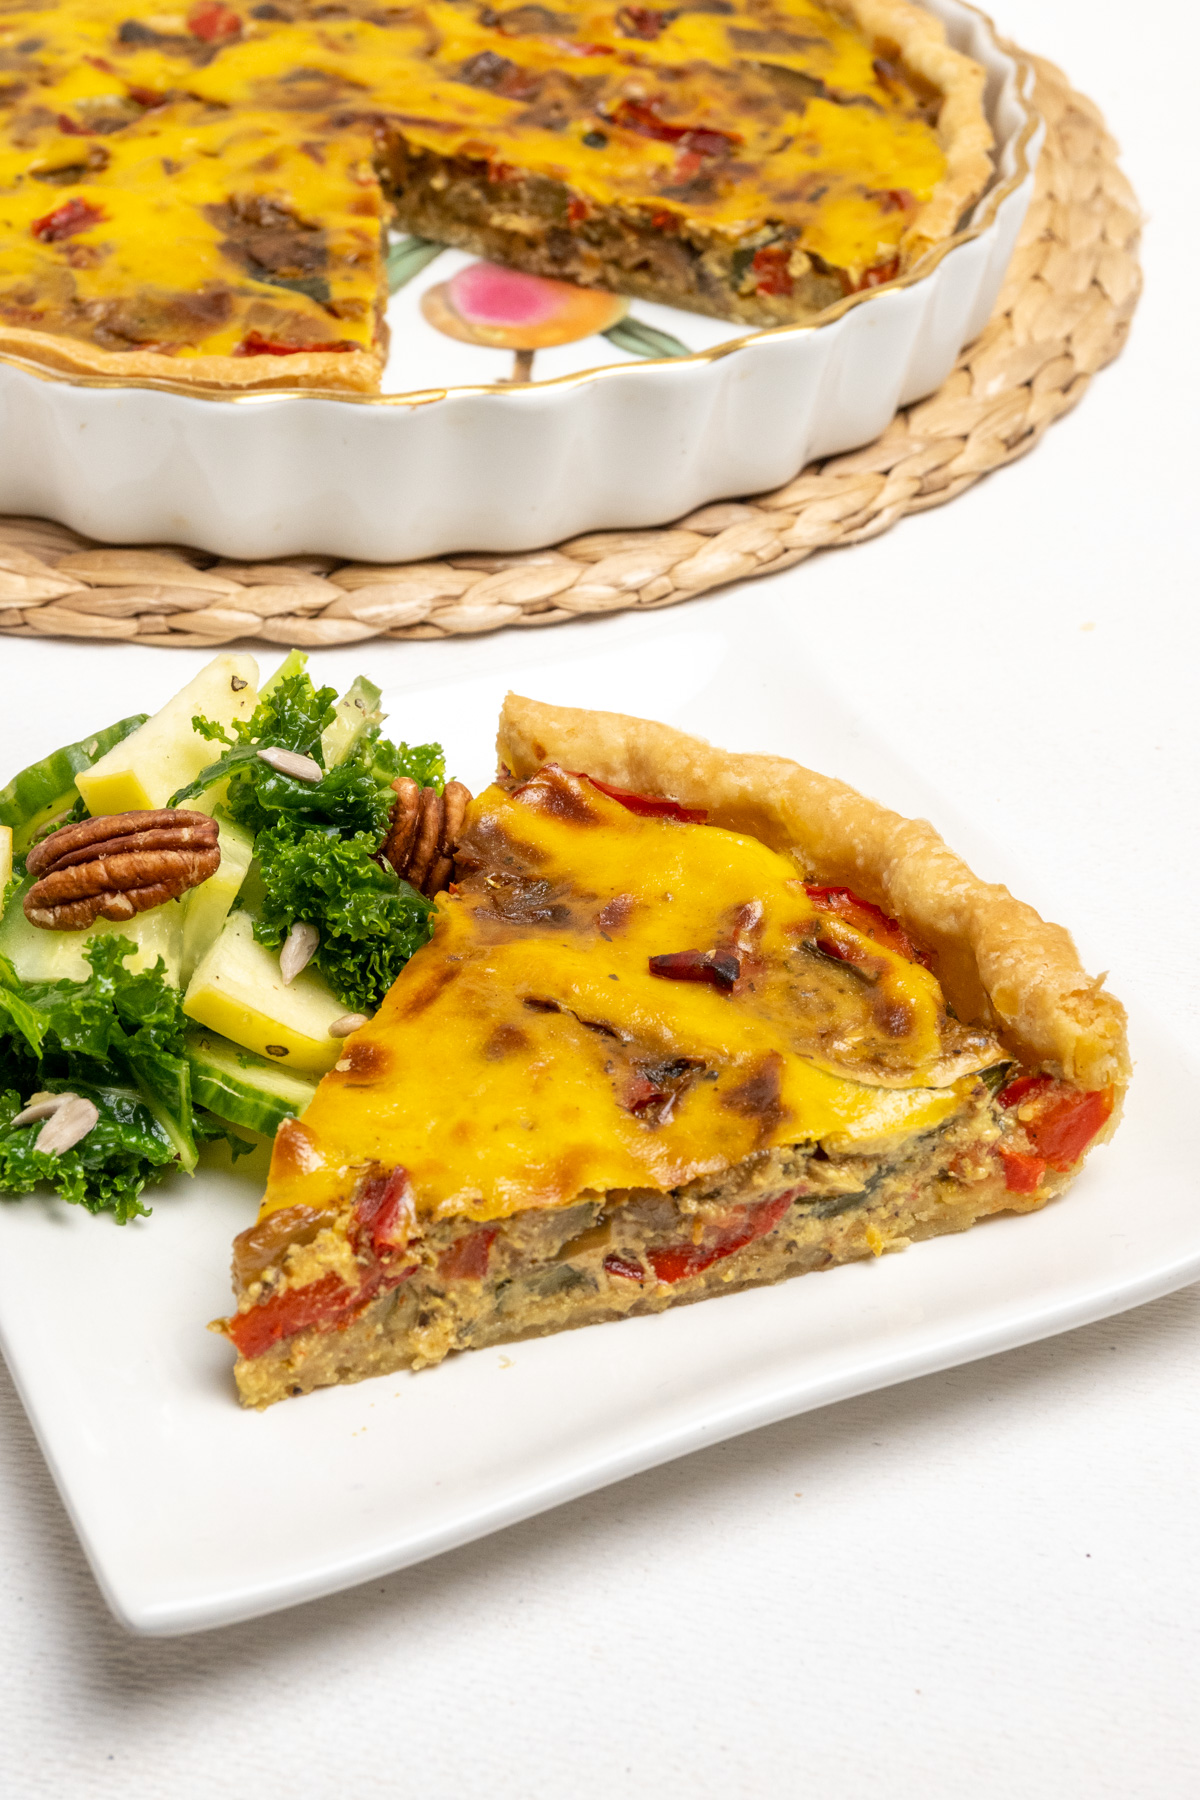 A slice of vegan quiche ready to eat.